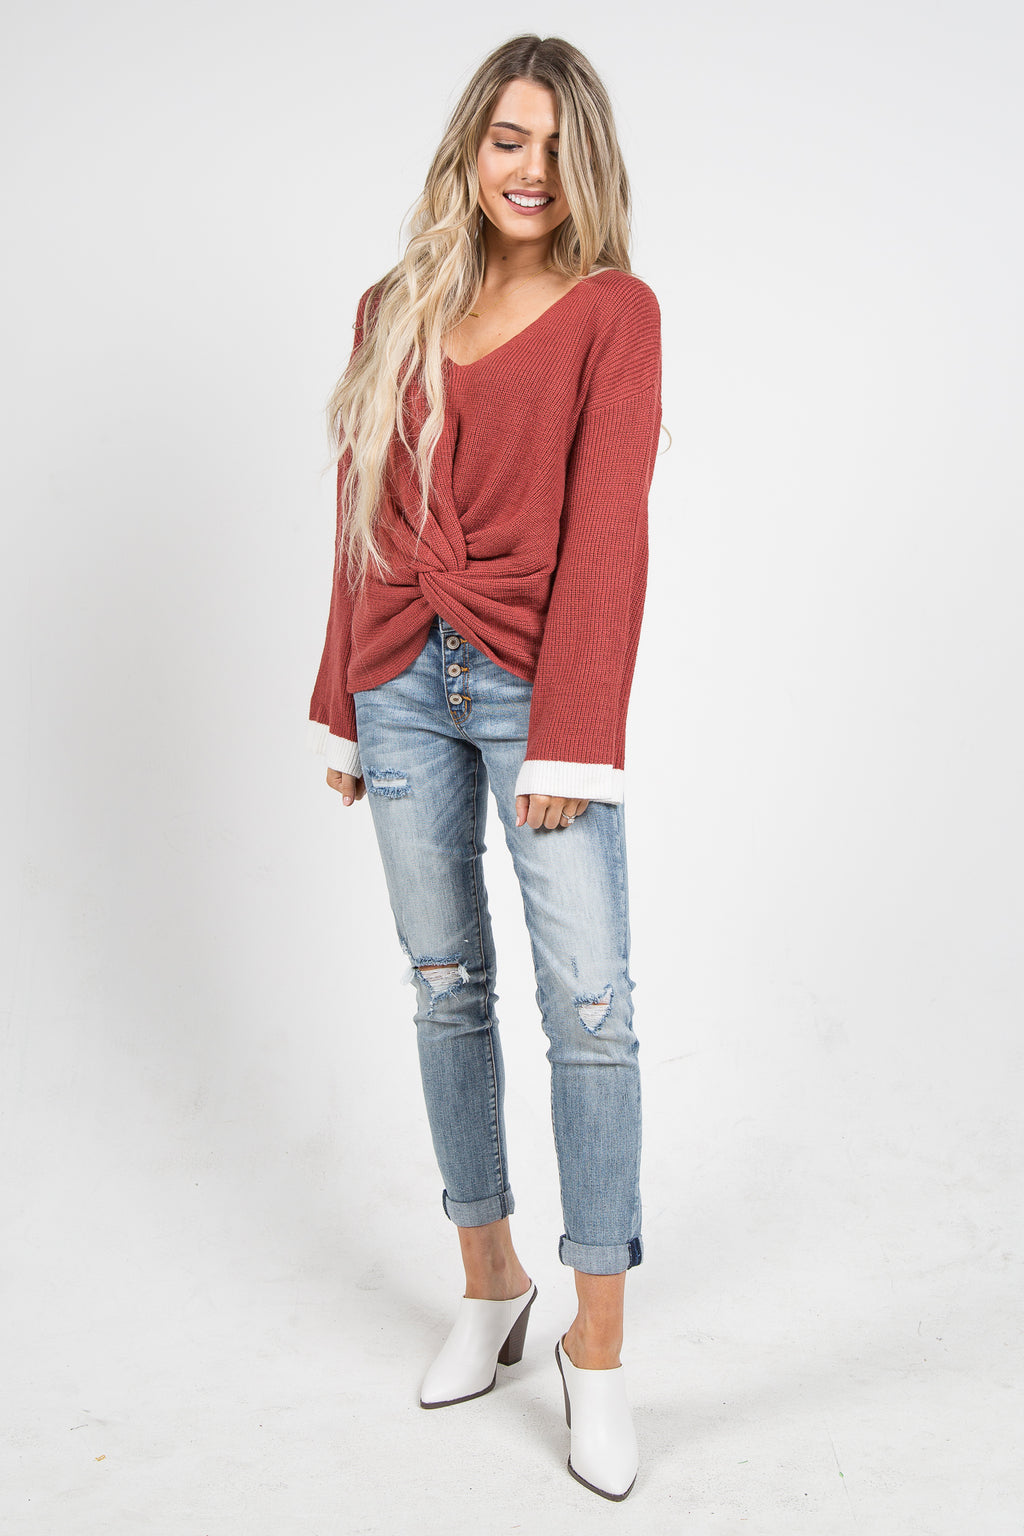 Cupid Twist Sweater